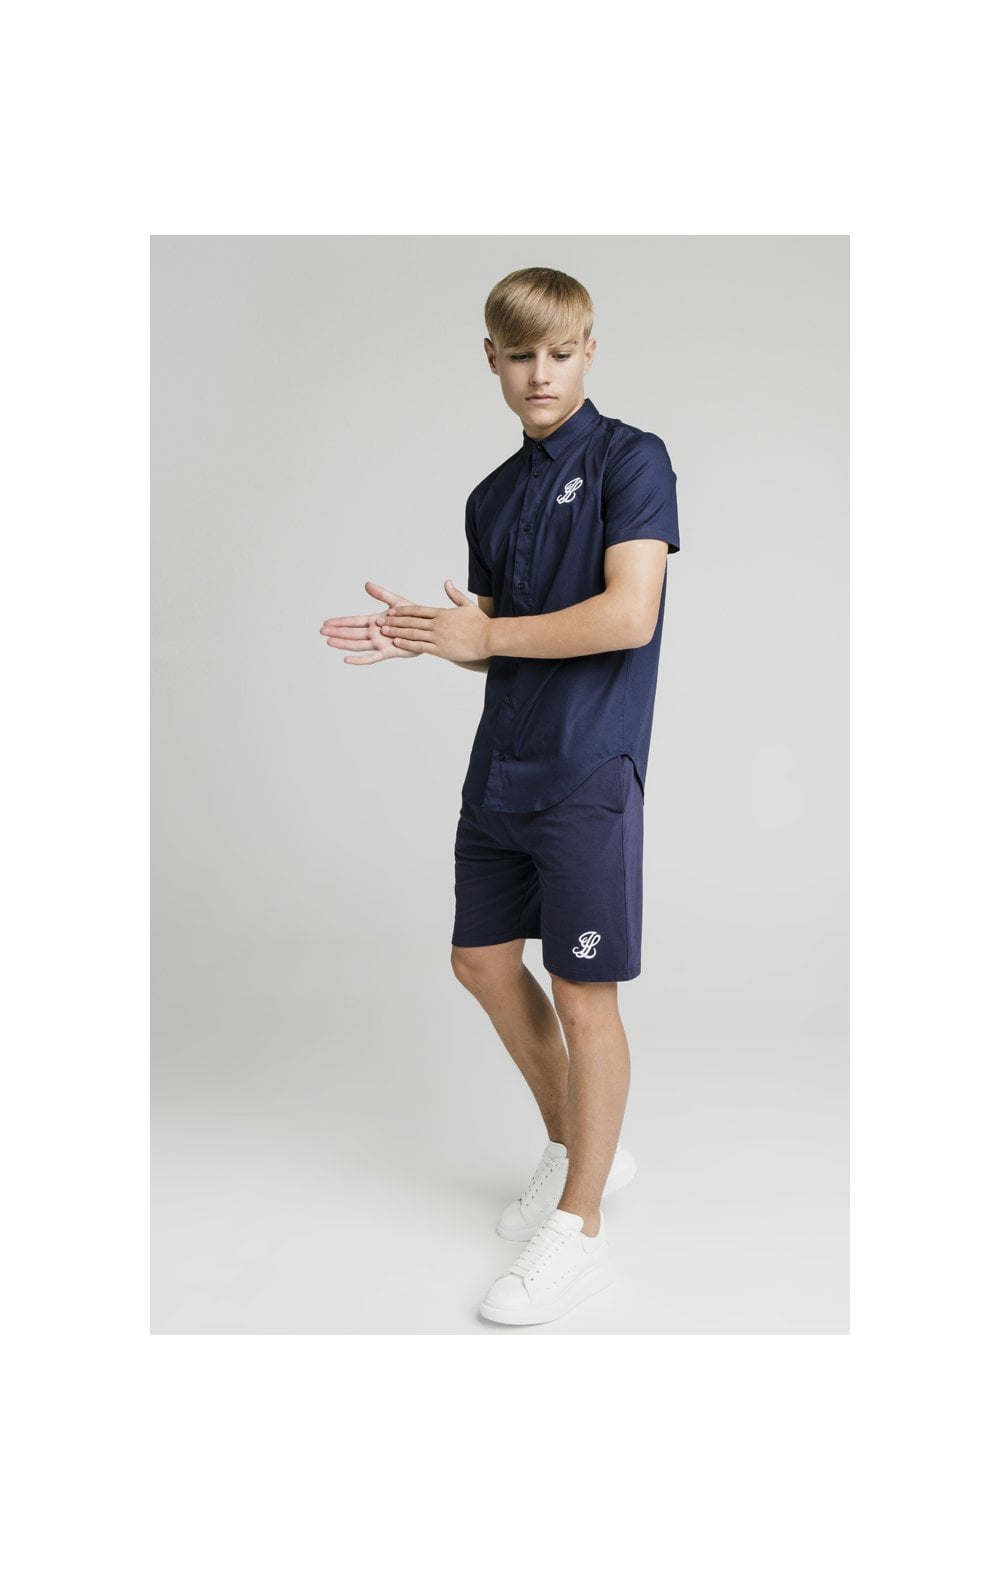 Illusive London Side Tape Jersey Shorts - Navy (6)